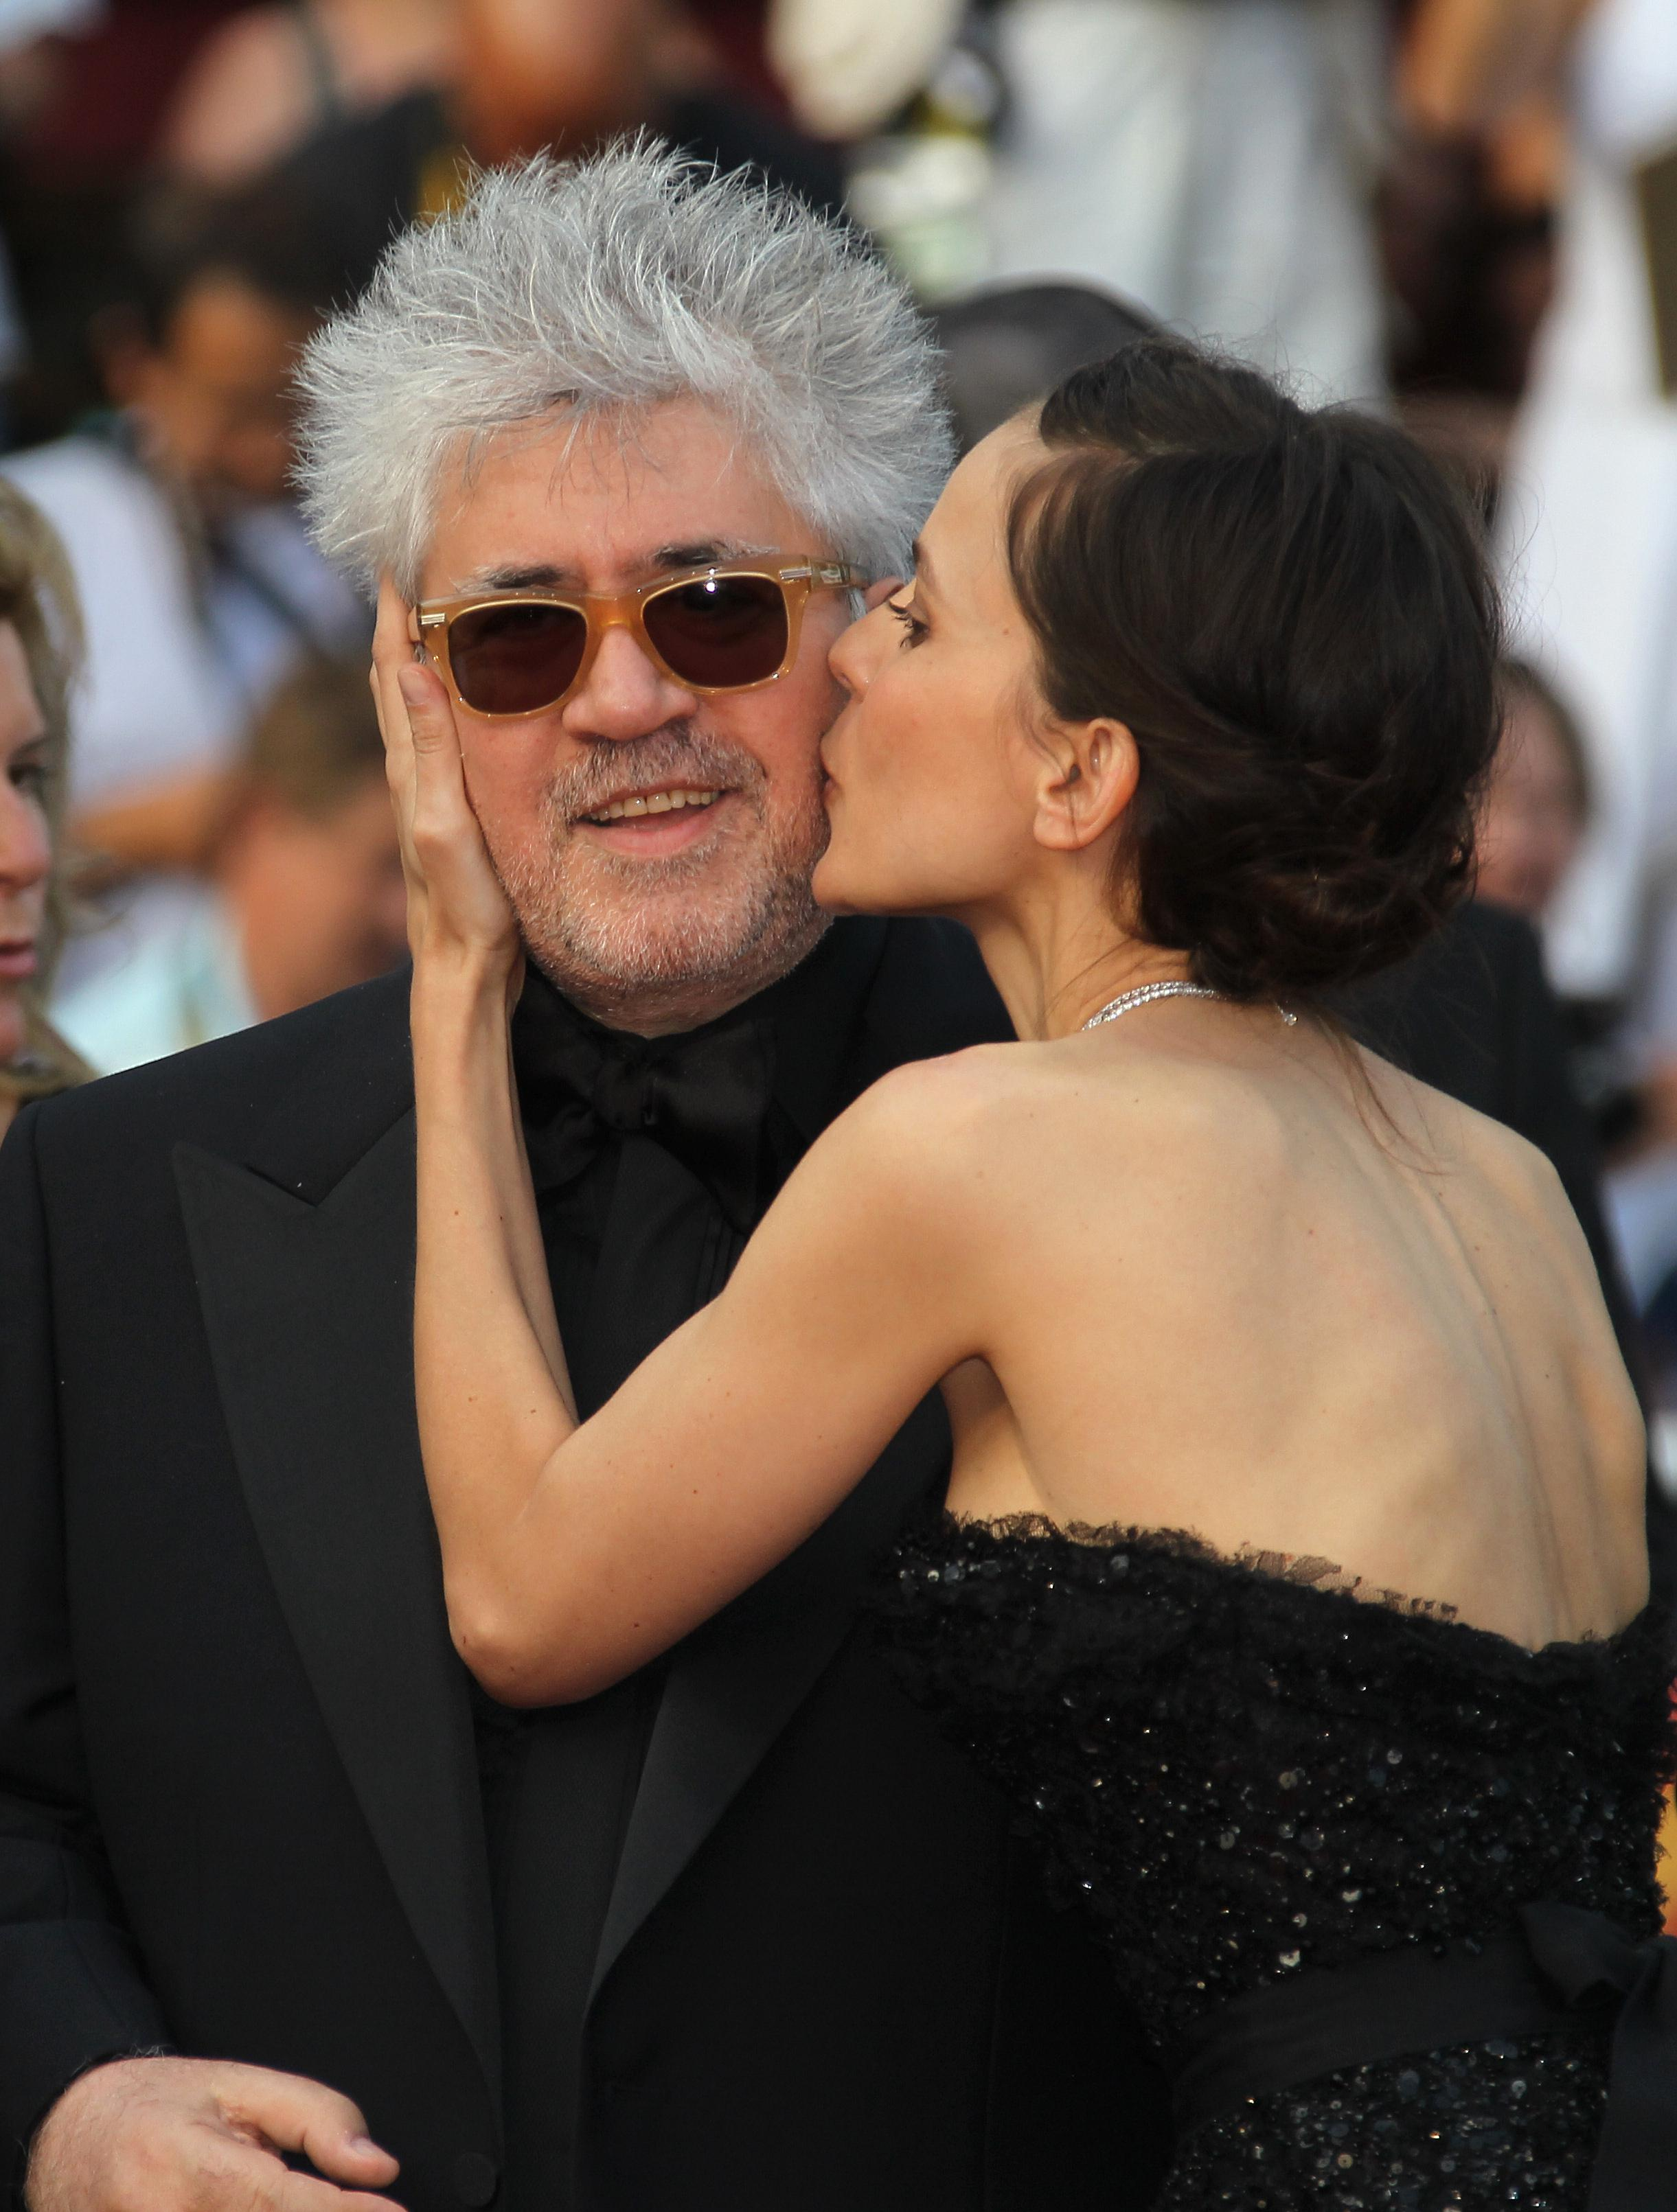 Elena Anaya kisses Pedro Almodovar before a screening of The Skin I Live In at Cannes in May.